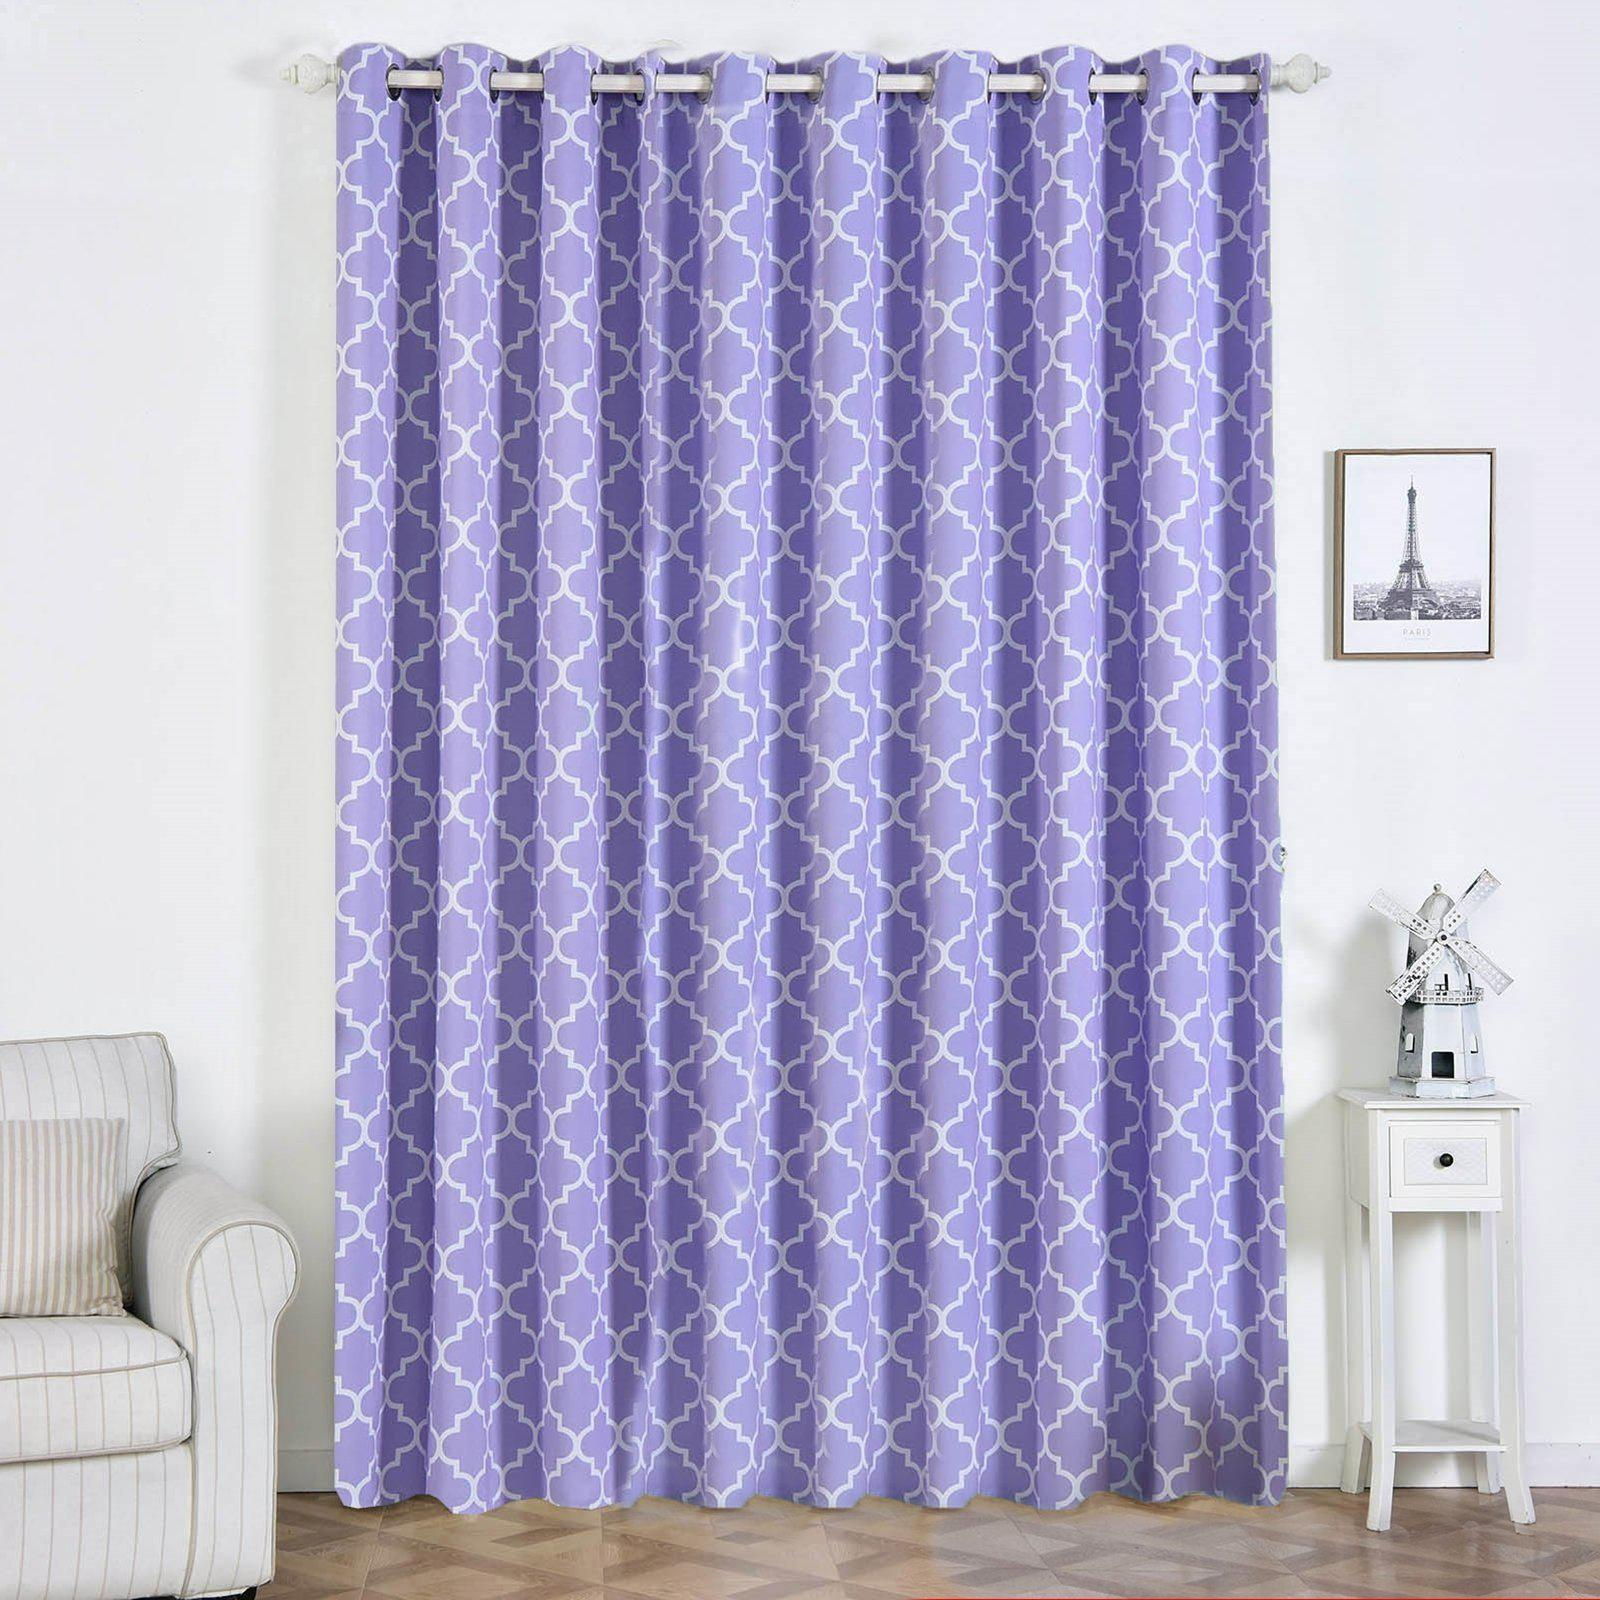 108 Inch Heavy Material Curtain Panels